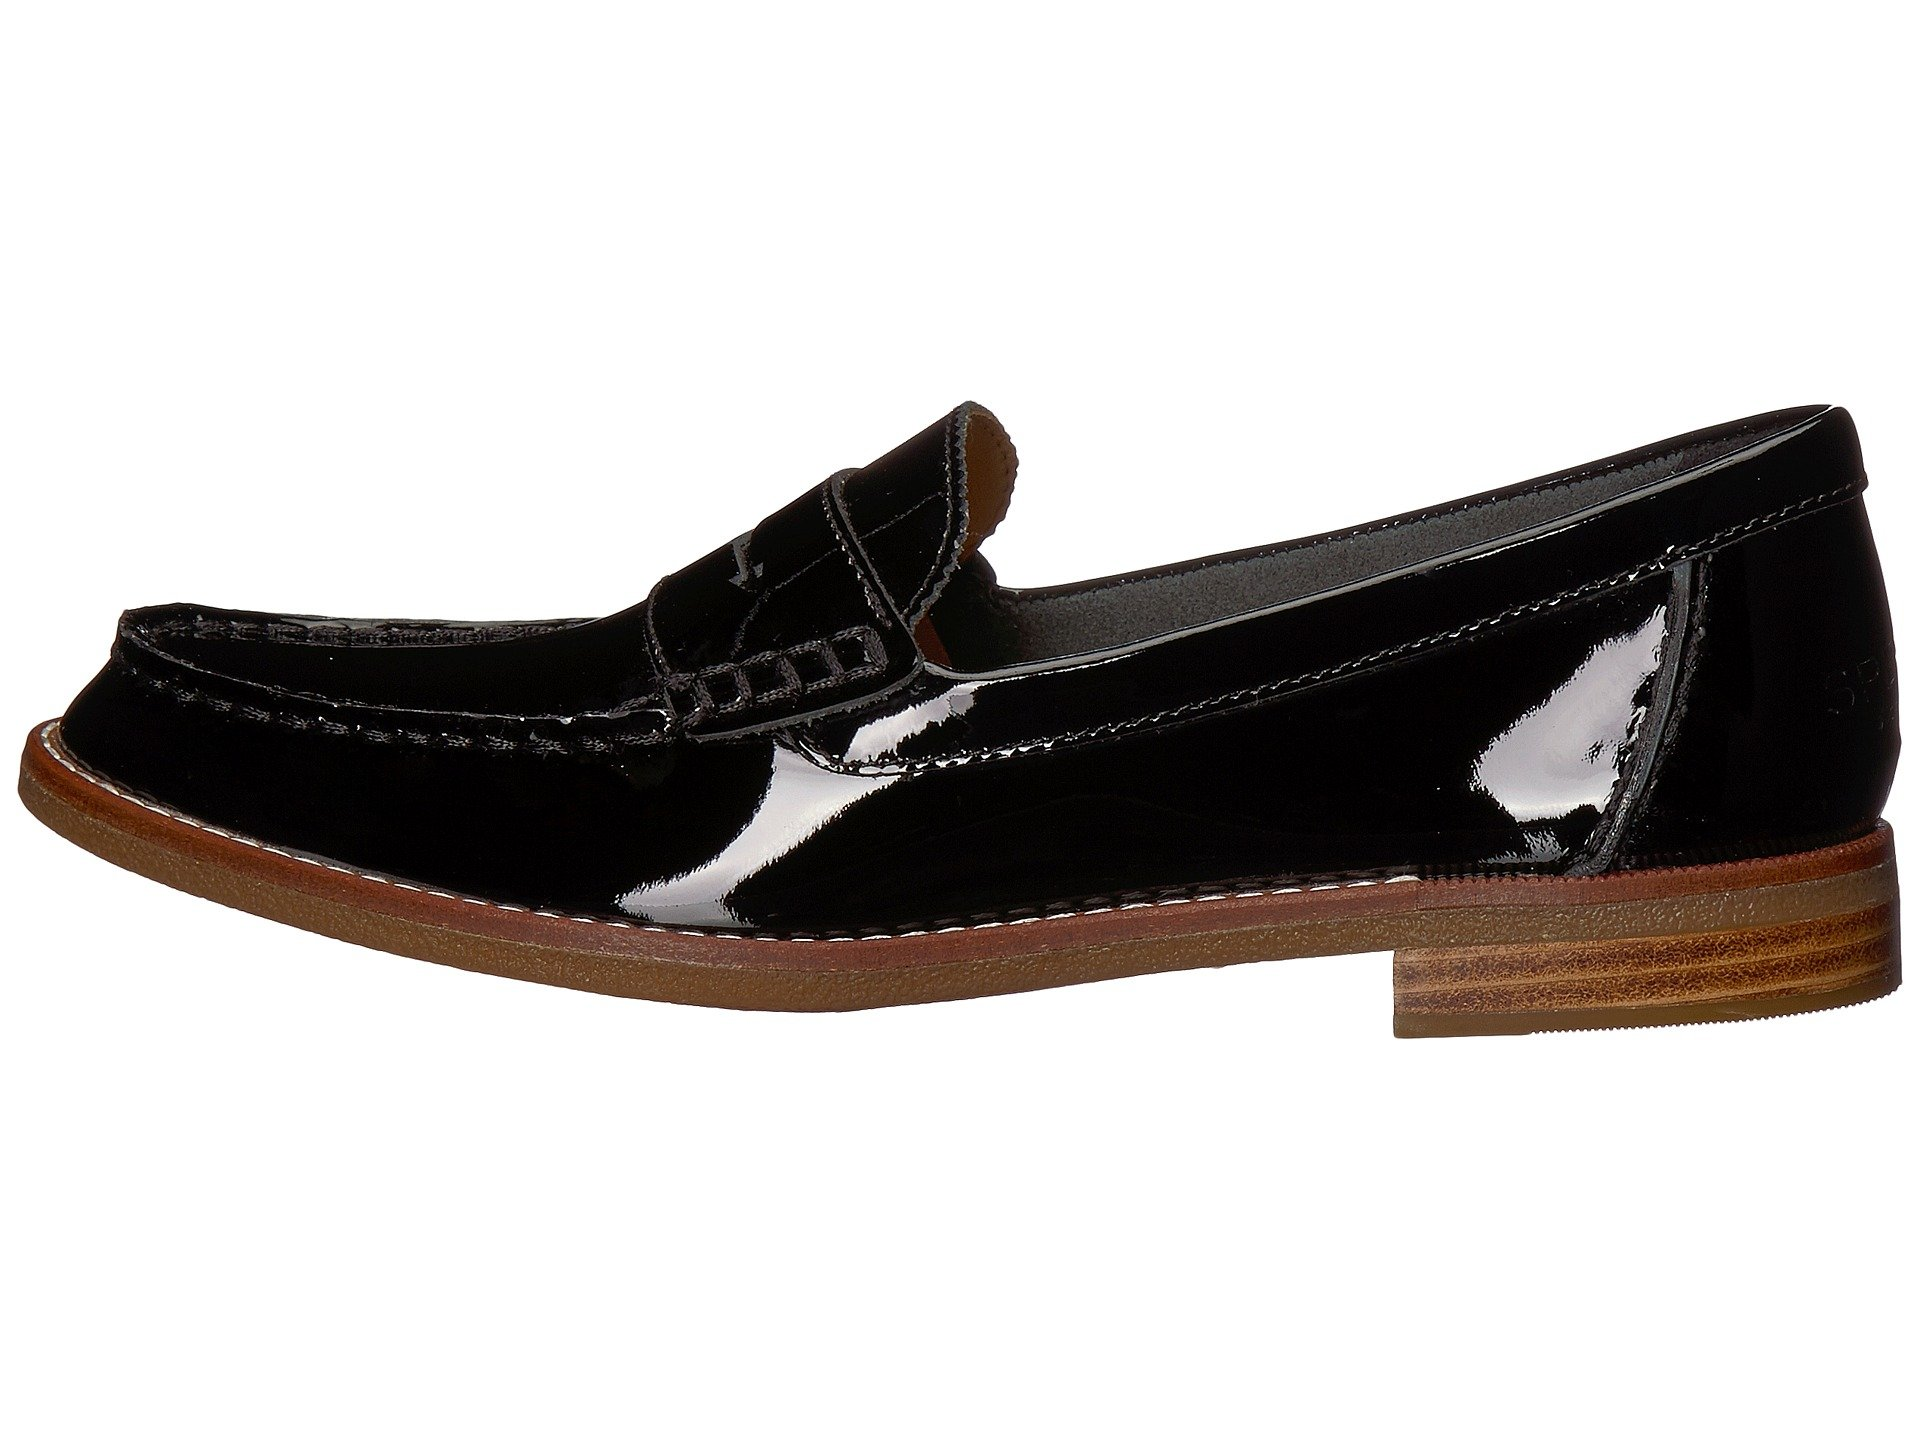 Black Penny Seaport Penny Sperry Sperry Seaport Black Seaport Penny Black Seaport Sperry Sperry nWgZAUp1